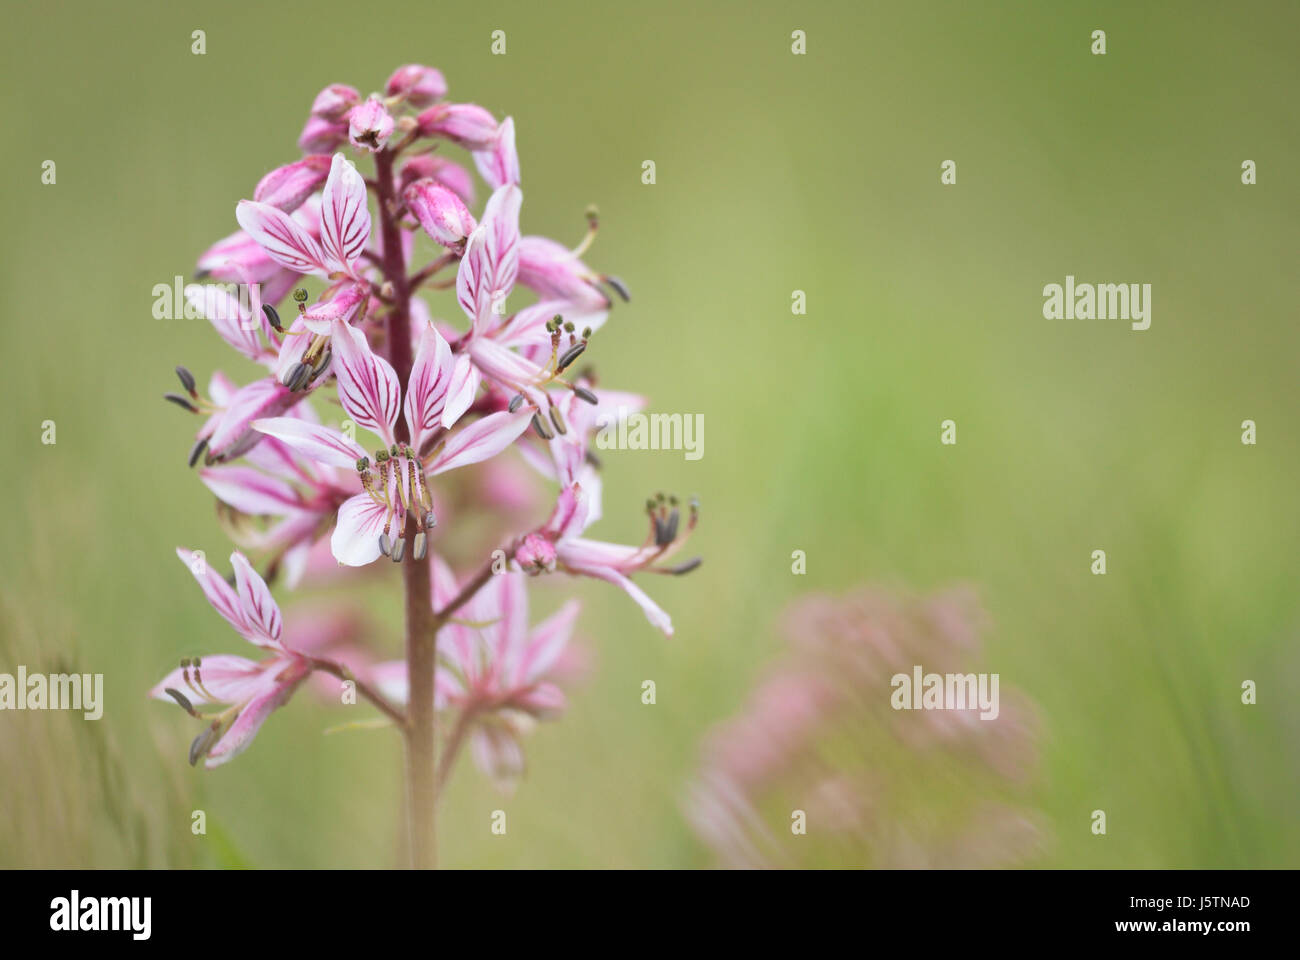 Gas plant (Dictamnus albus), a quaintly old-timey perennial herb that exudes a flammable gas that you can ignite - Stock Image